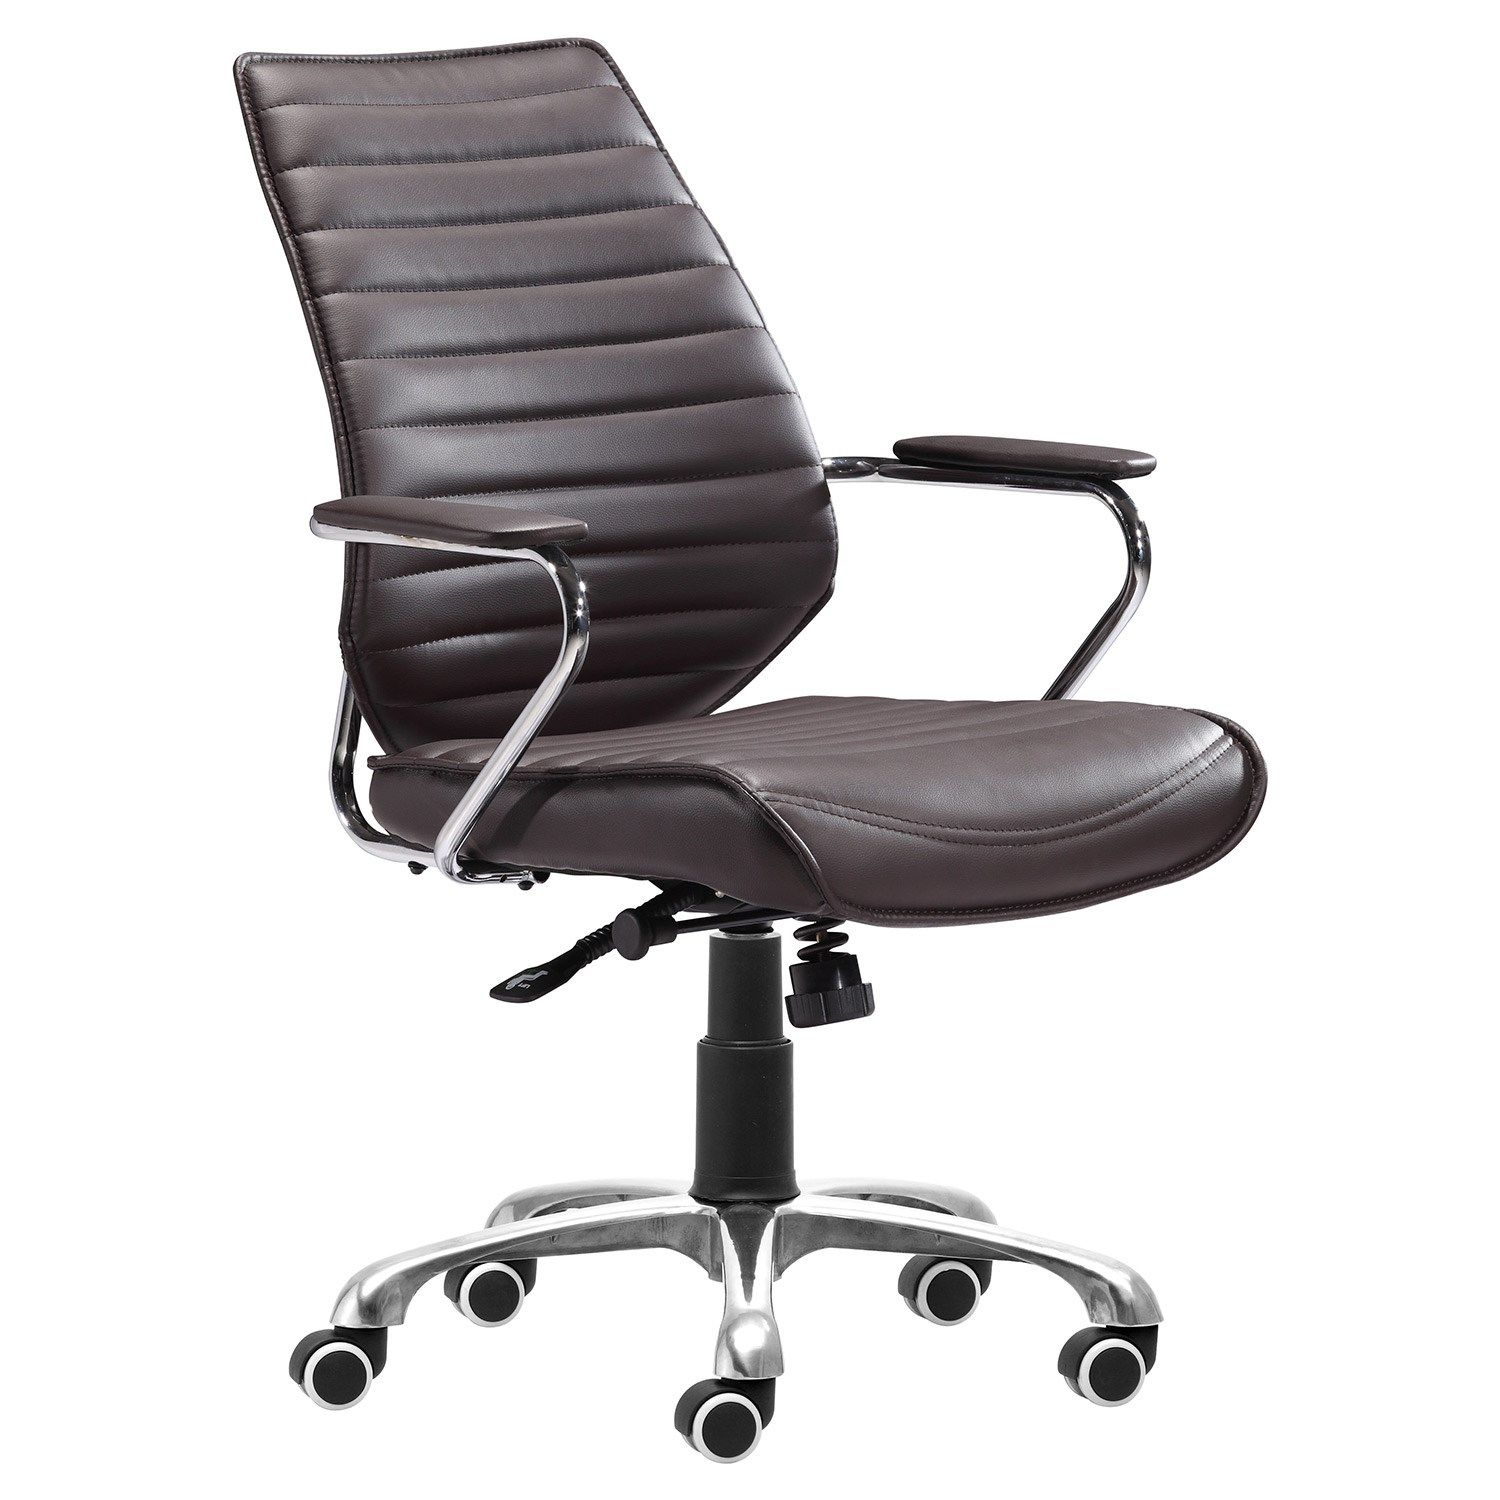 Enterprise Espresso Low Back Office Chair